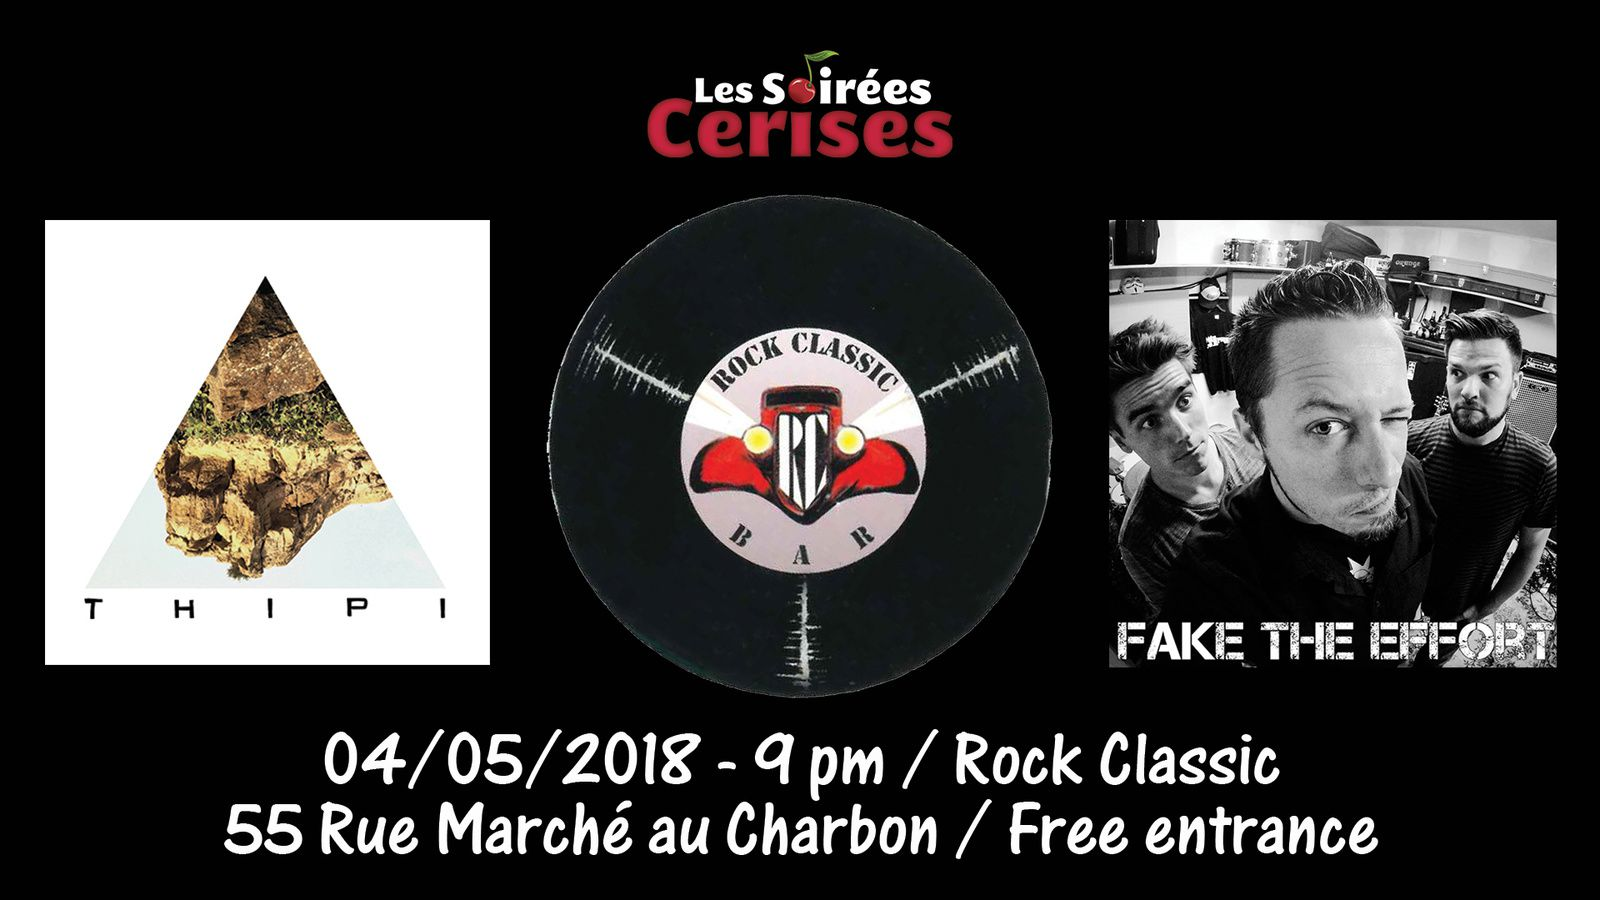 ▶ Fake the effort + Thipi @ Rock Classic - 04/05/2018 - 21h00 - Entrée gratuite !